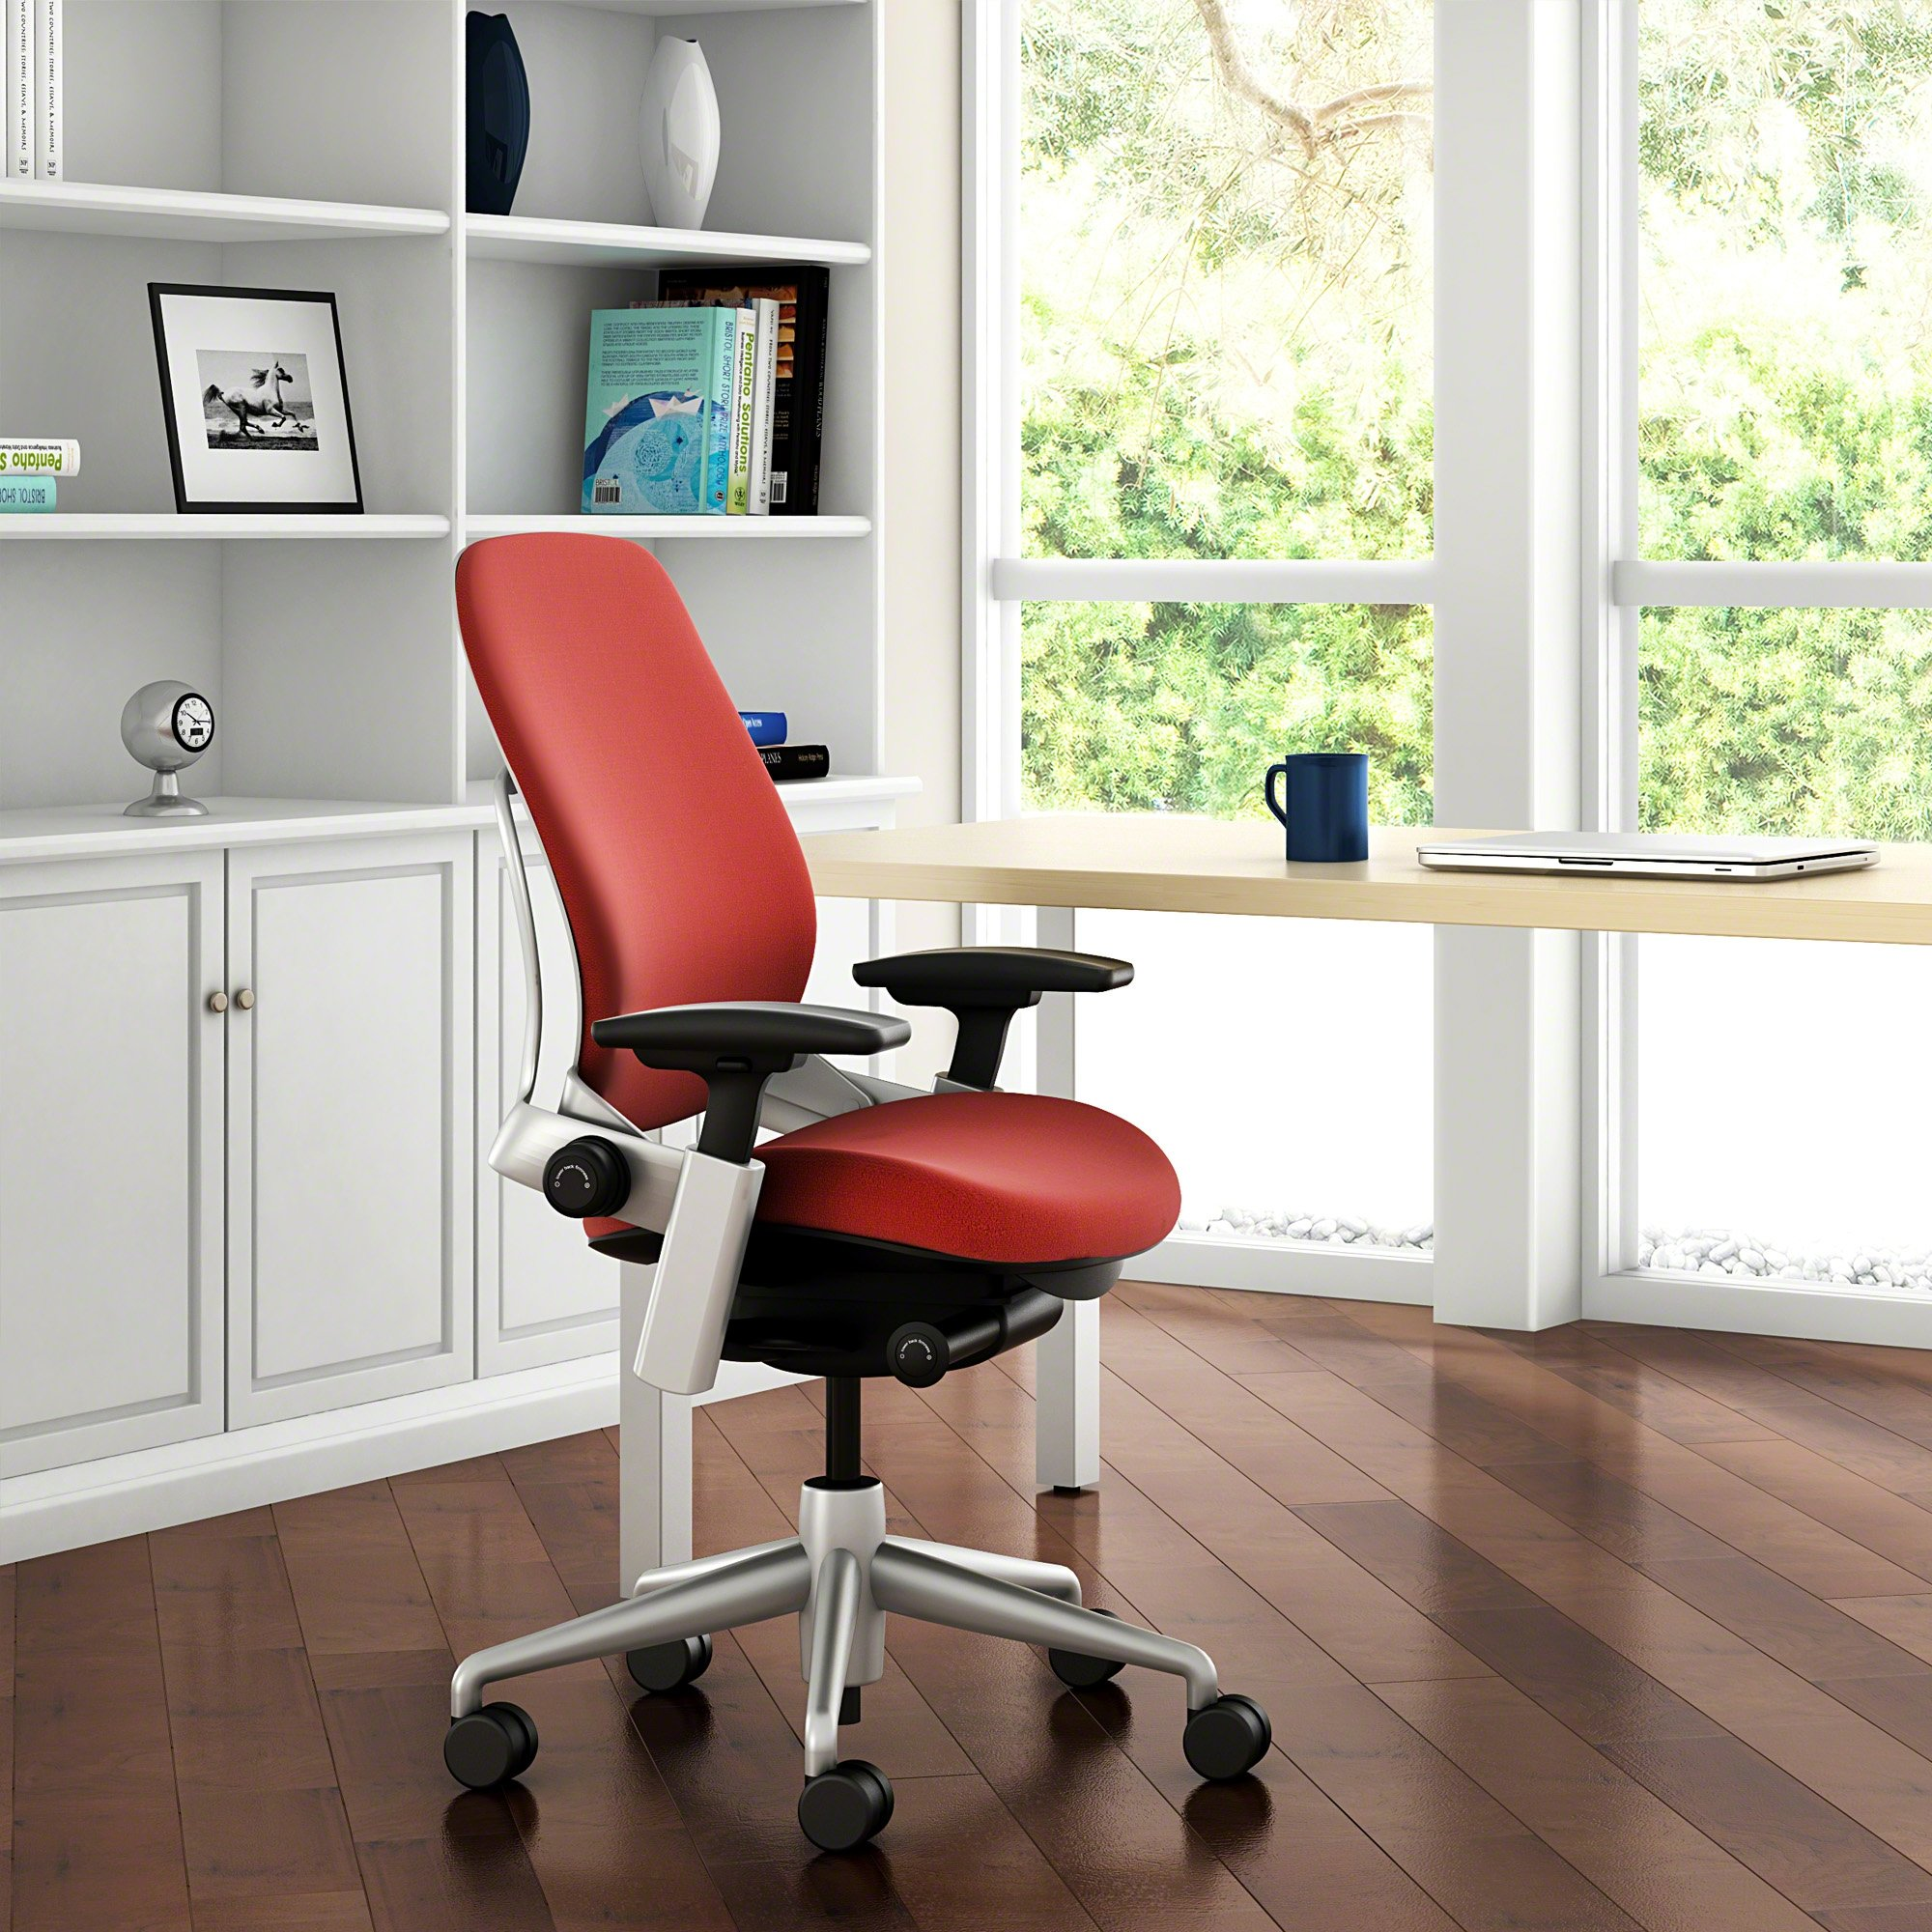 Steelcase Leap Chair, Barley Fabric